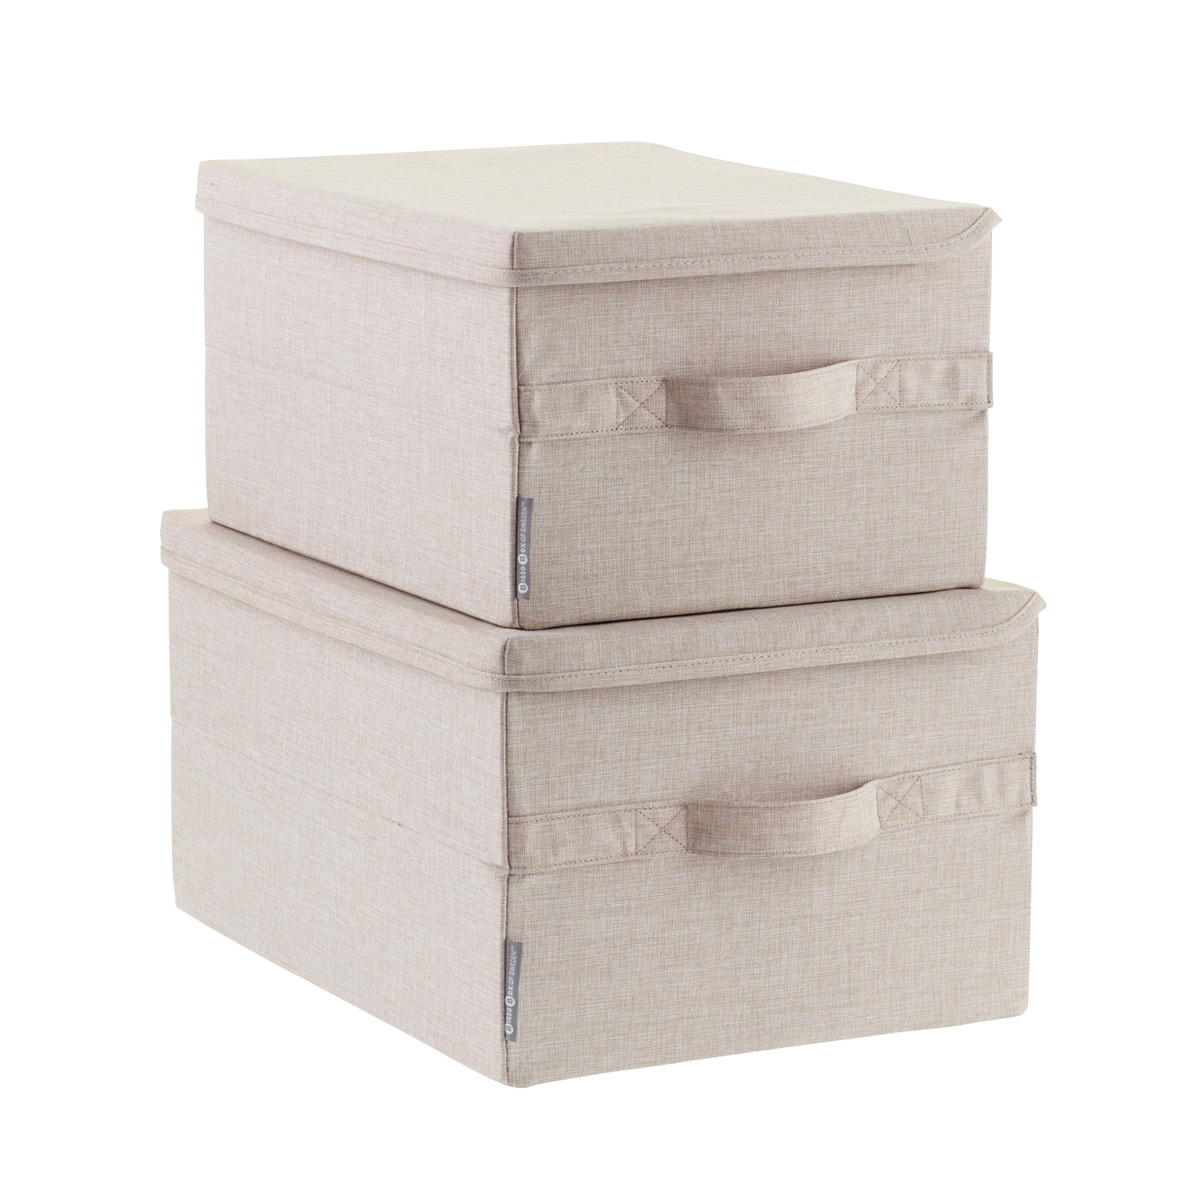 Bigso Flax Soft Storage Boxes with Handles ...  sc 1 st  The Container Store & Bigso Flax Soft Storage Boxes with Handles   The Container Store